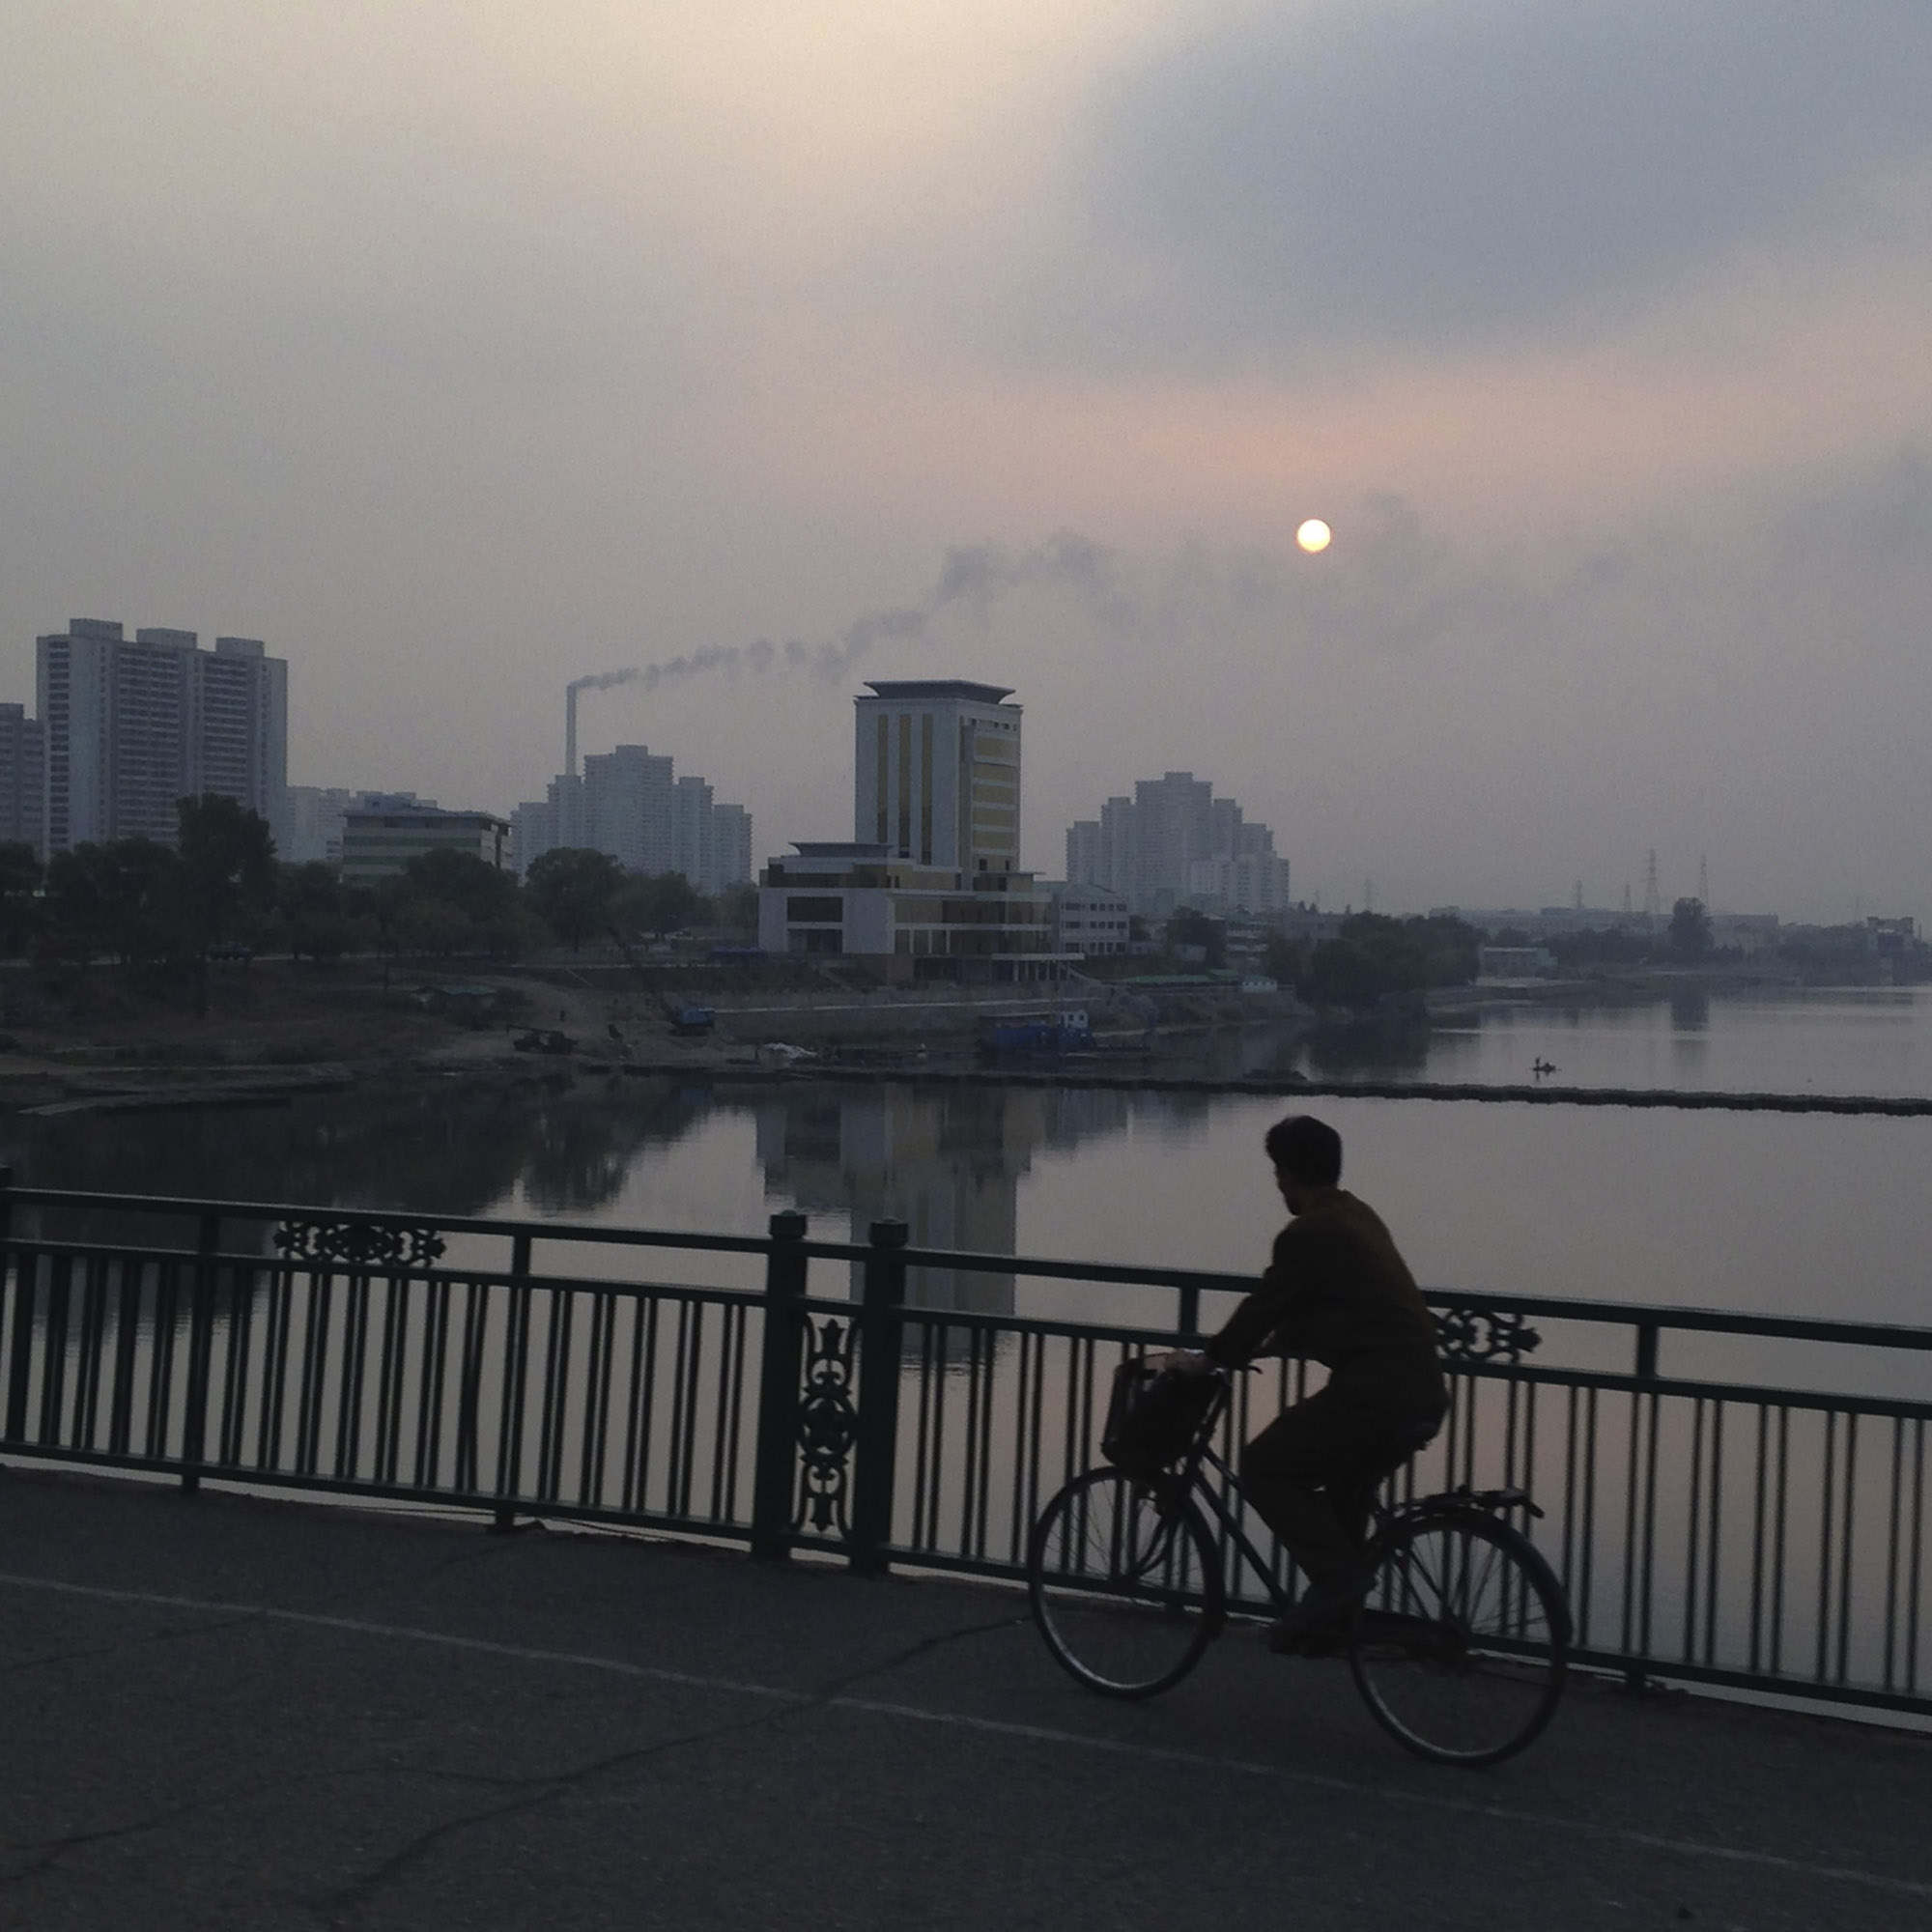 A North Korean man rides his bicycle as the sun sets over the Taedong River in Pyongyang.